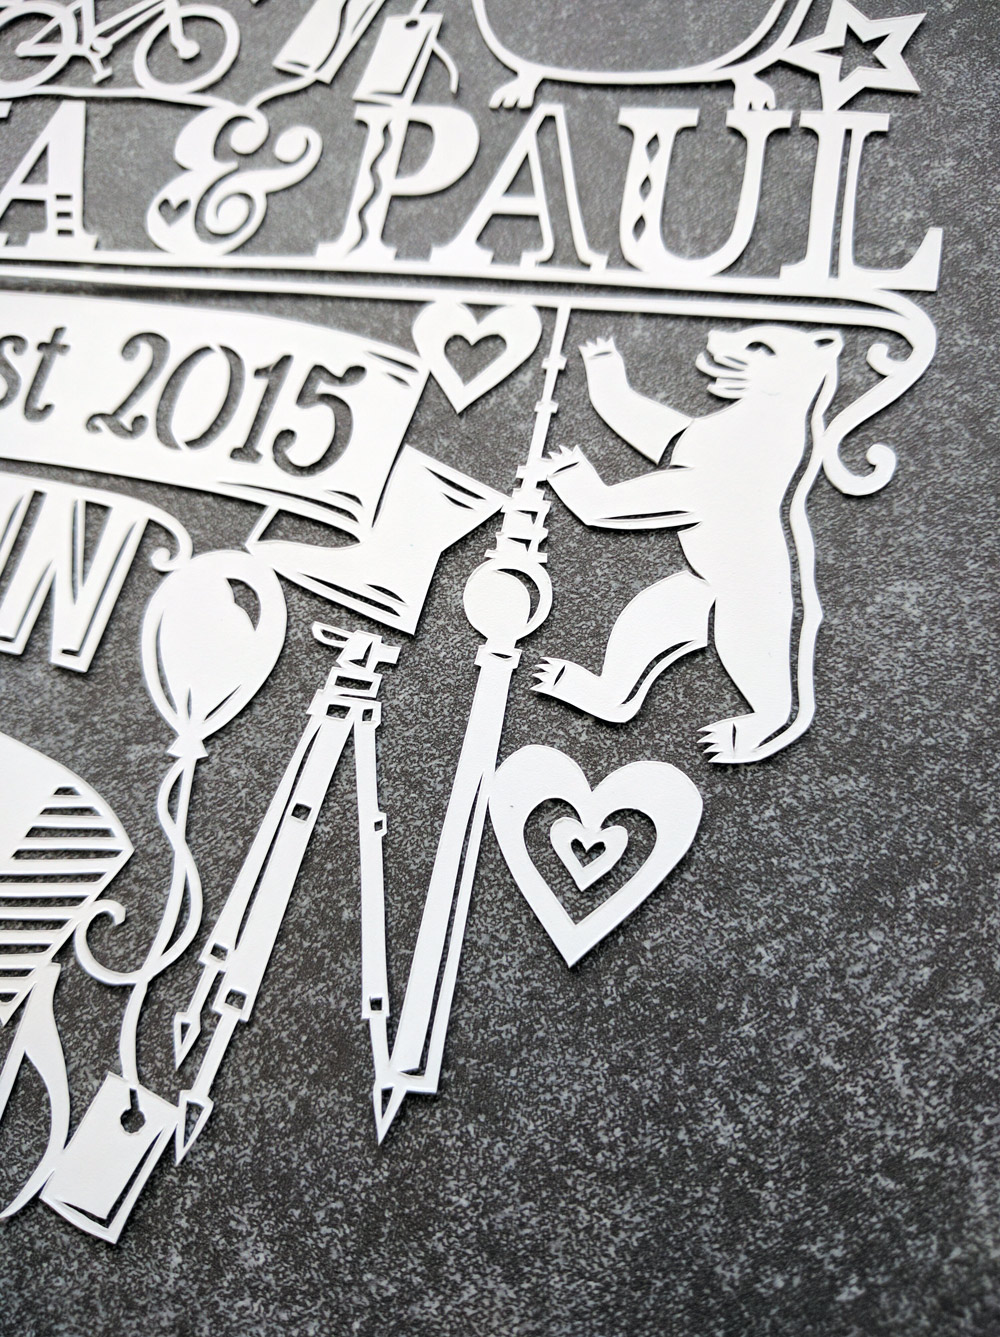 papercut-illustration-berlin-london-3